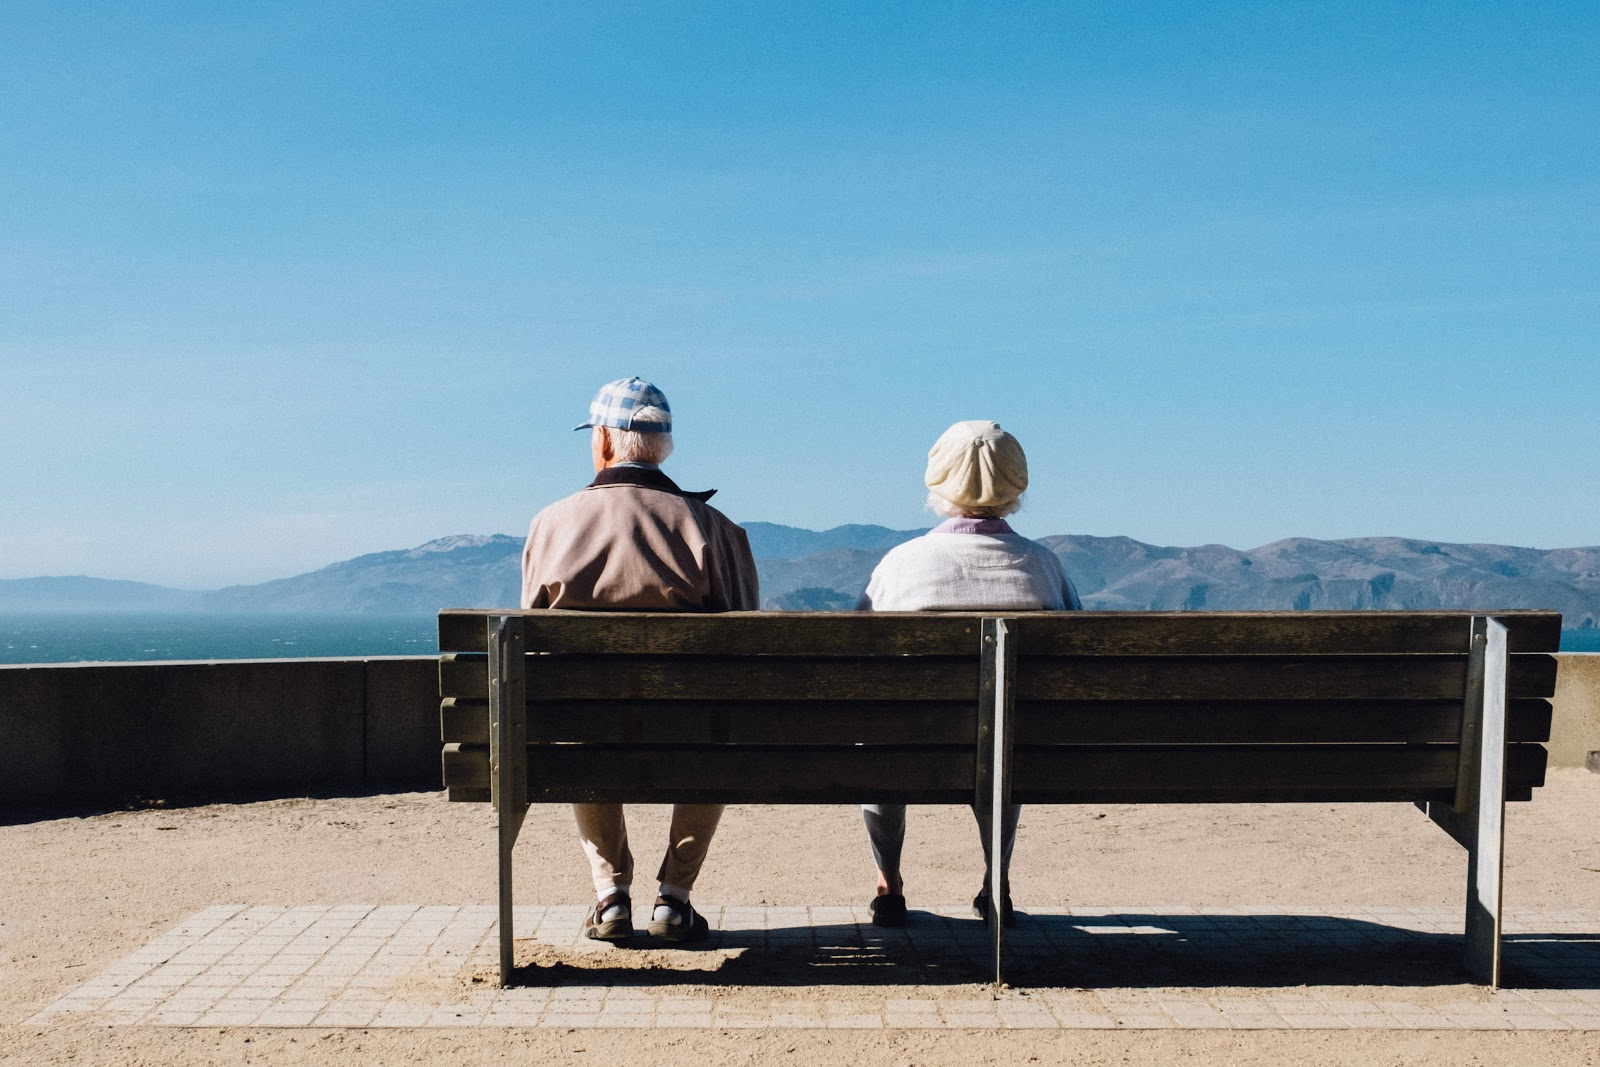 Elderly couple sitting on a bench looking out at mountains